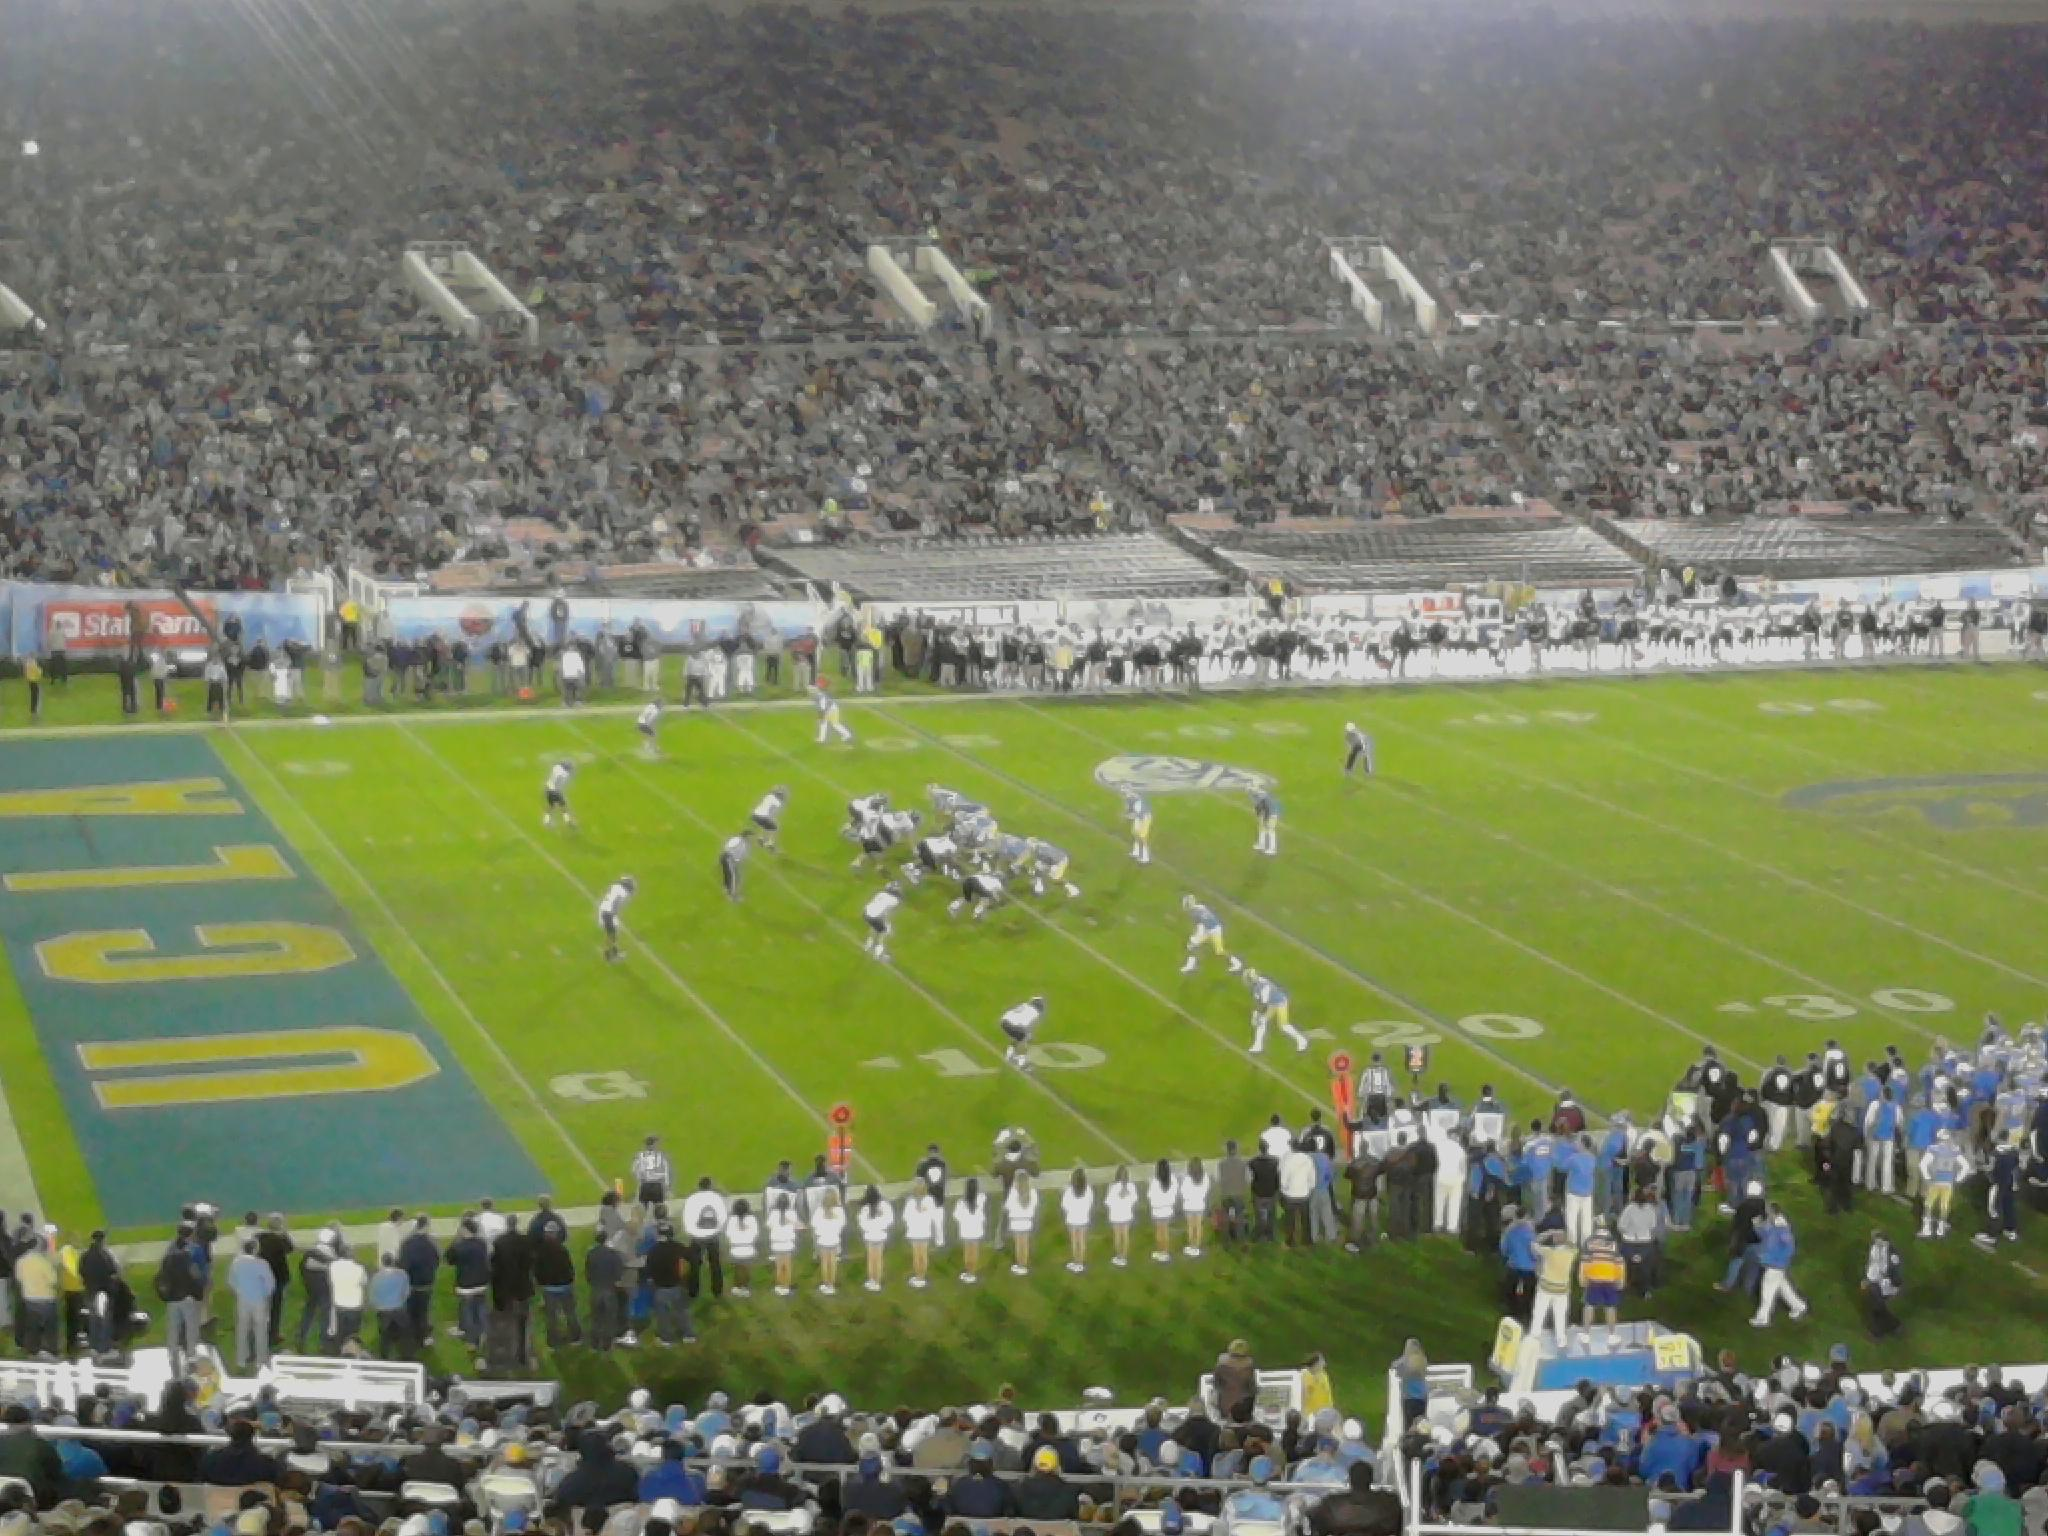 Rose Bowl Section 2-L Row 71 Seat 5